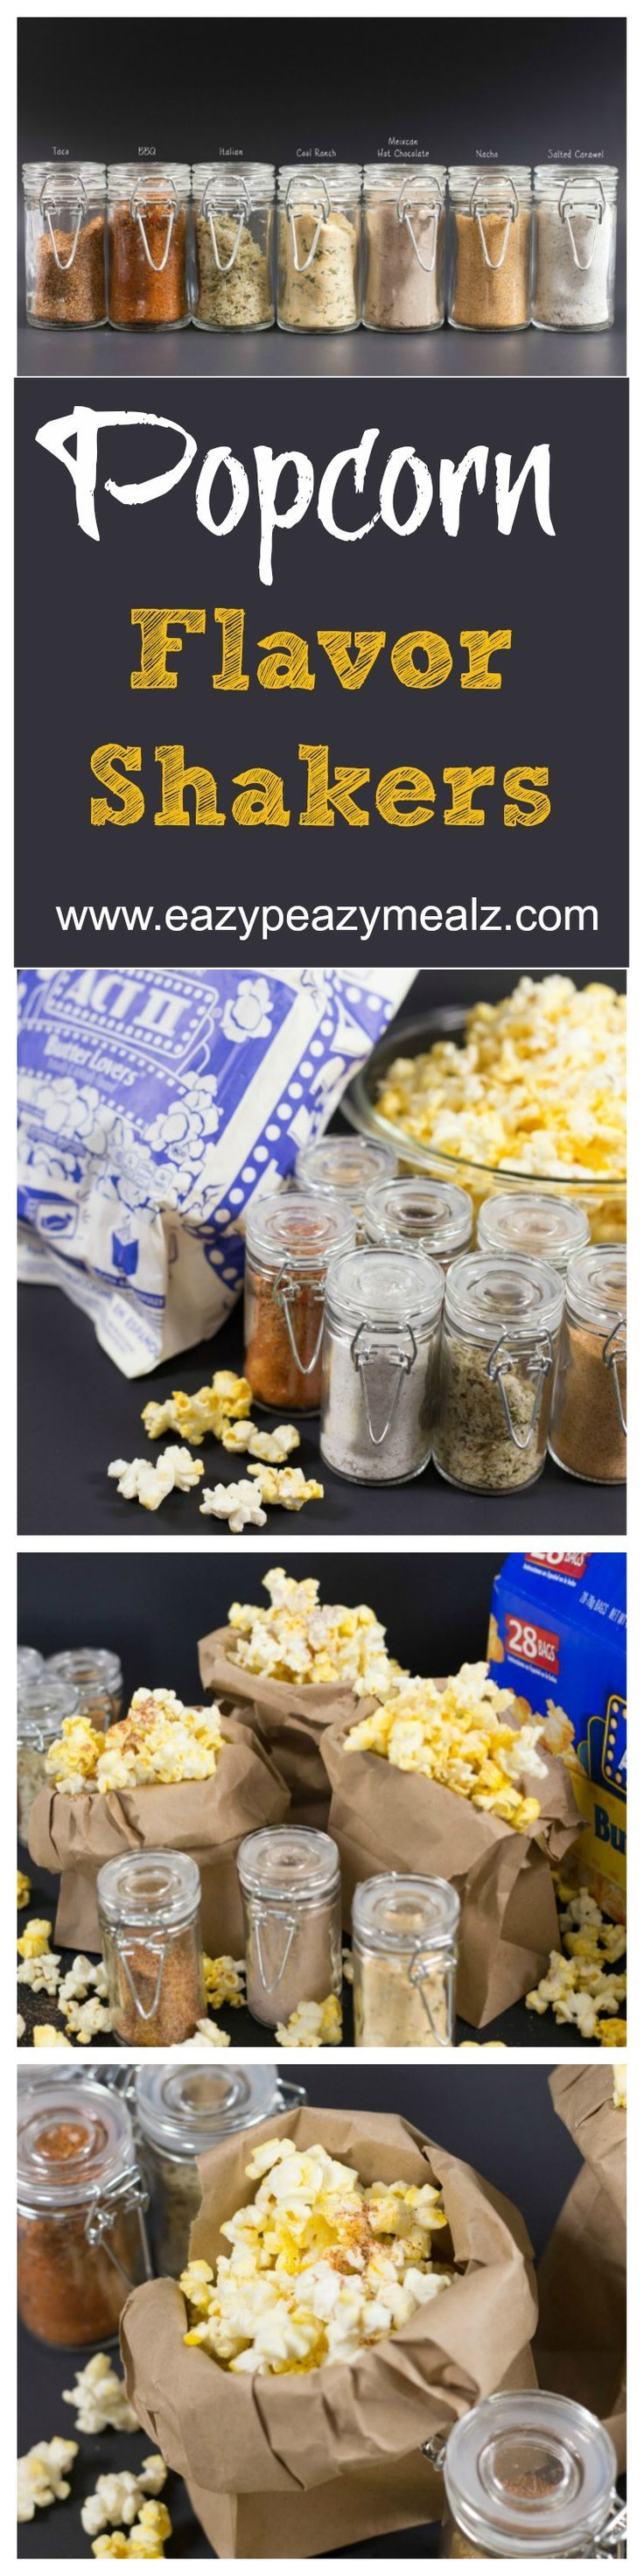 Popcorn flavor shakers paired with Act II Butter Lovers Popcorn for a Pop-tastic family movie night, with popcorn flavors everyone loves! Or a great addition to a movie theme gift basket.